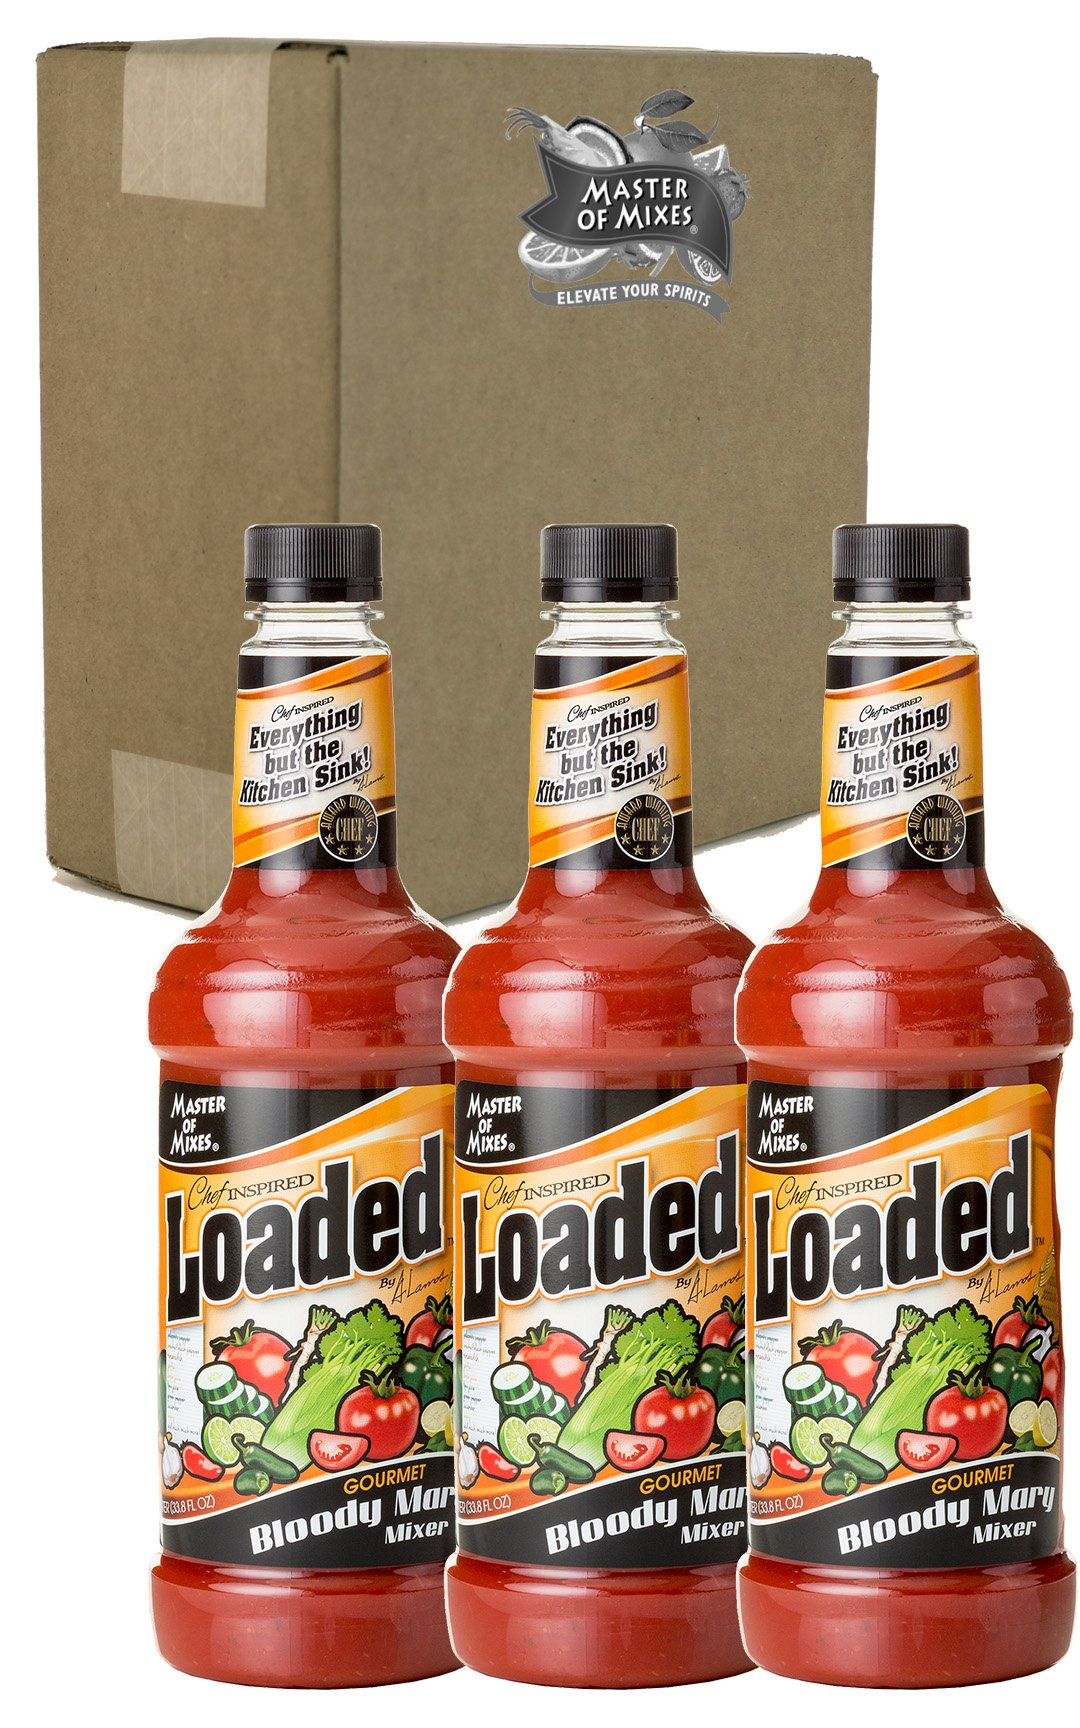 Master of Mixes Loaded Bloody Mary Drink Mix, Ready To Use, 1 Liter Bottle (33.8 Fl Oz), Pack of 3